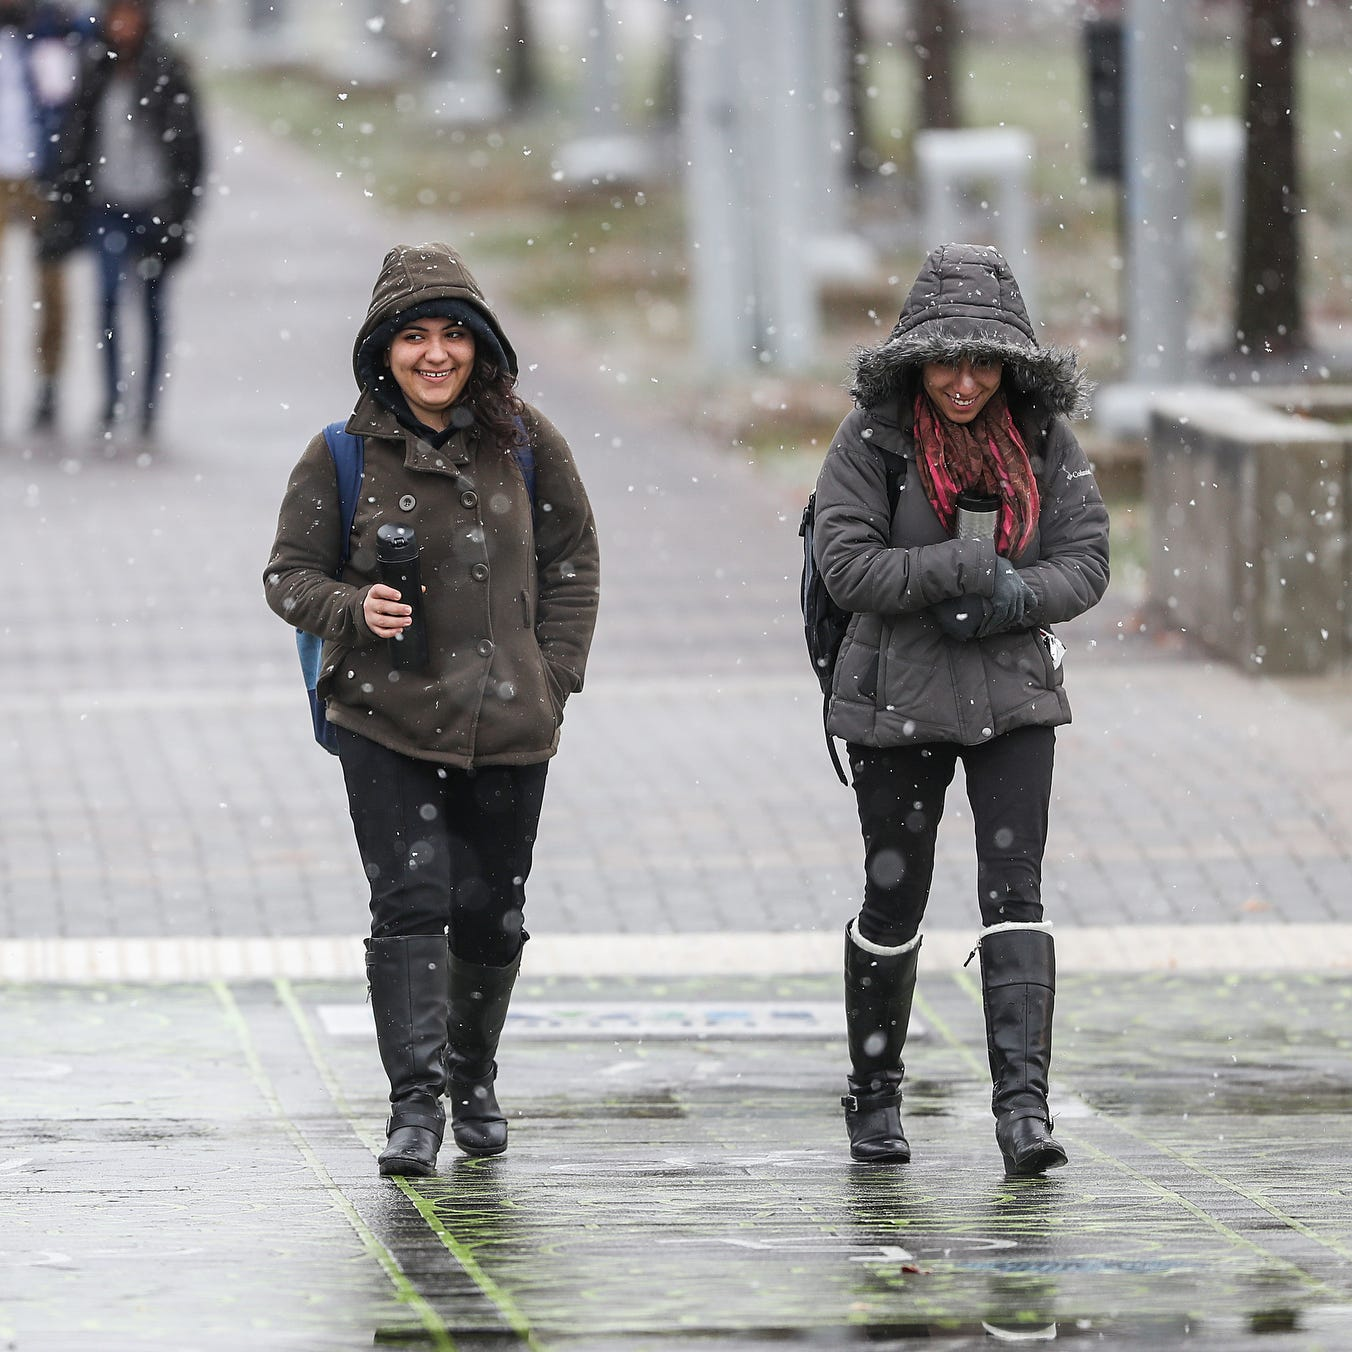 Indianapolis weather: Snow starting to fall; How rain, extreme cold will impact salt on roads